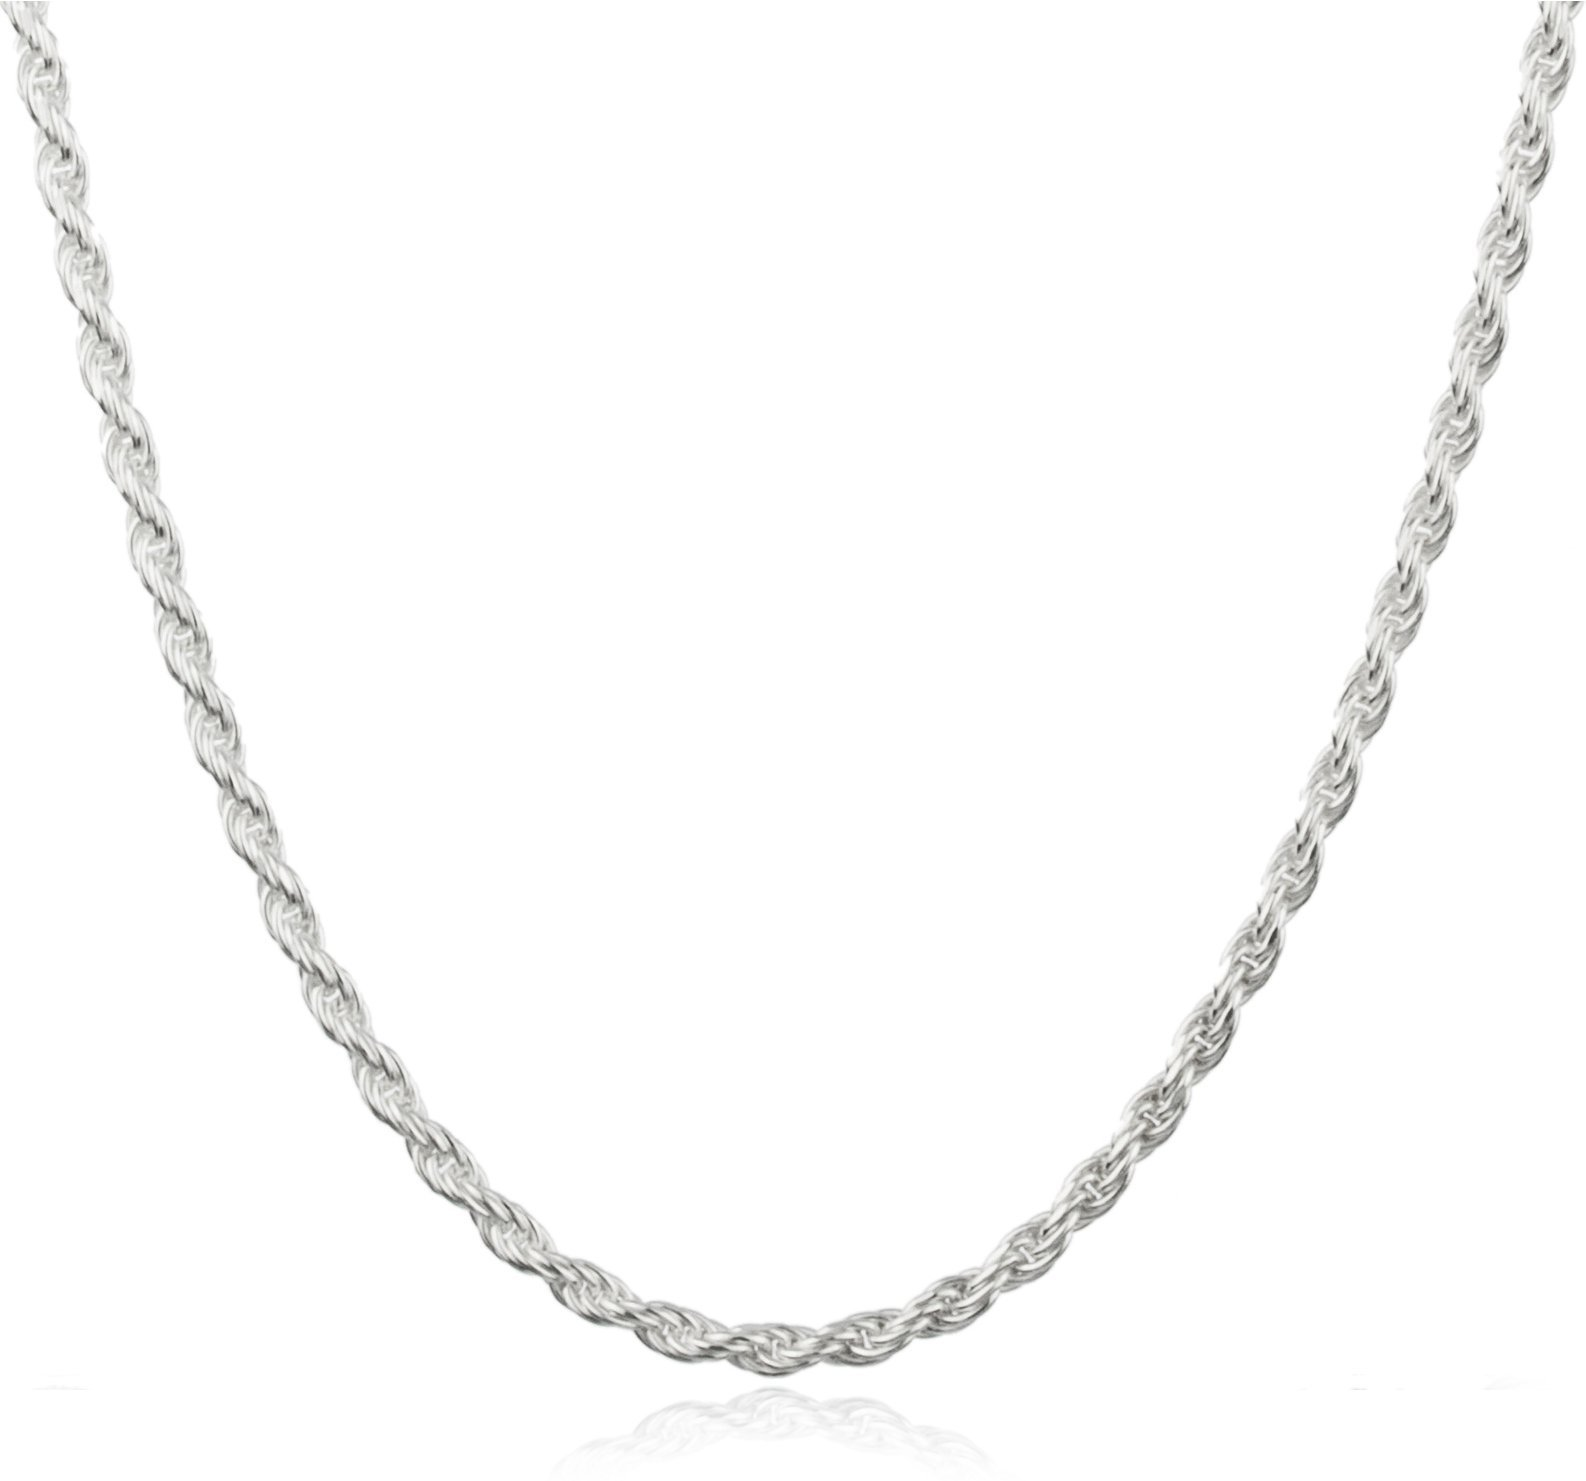 JOTW Sterling Silver 2mm Rope Chain (sterling-silver, 24 Inches) (I-2592 (FBM))